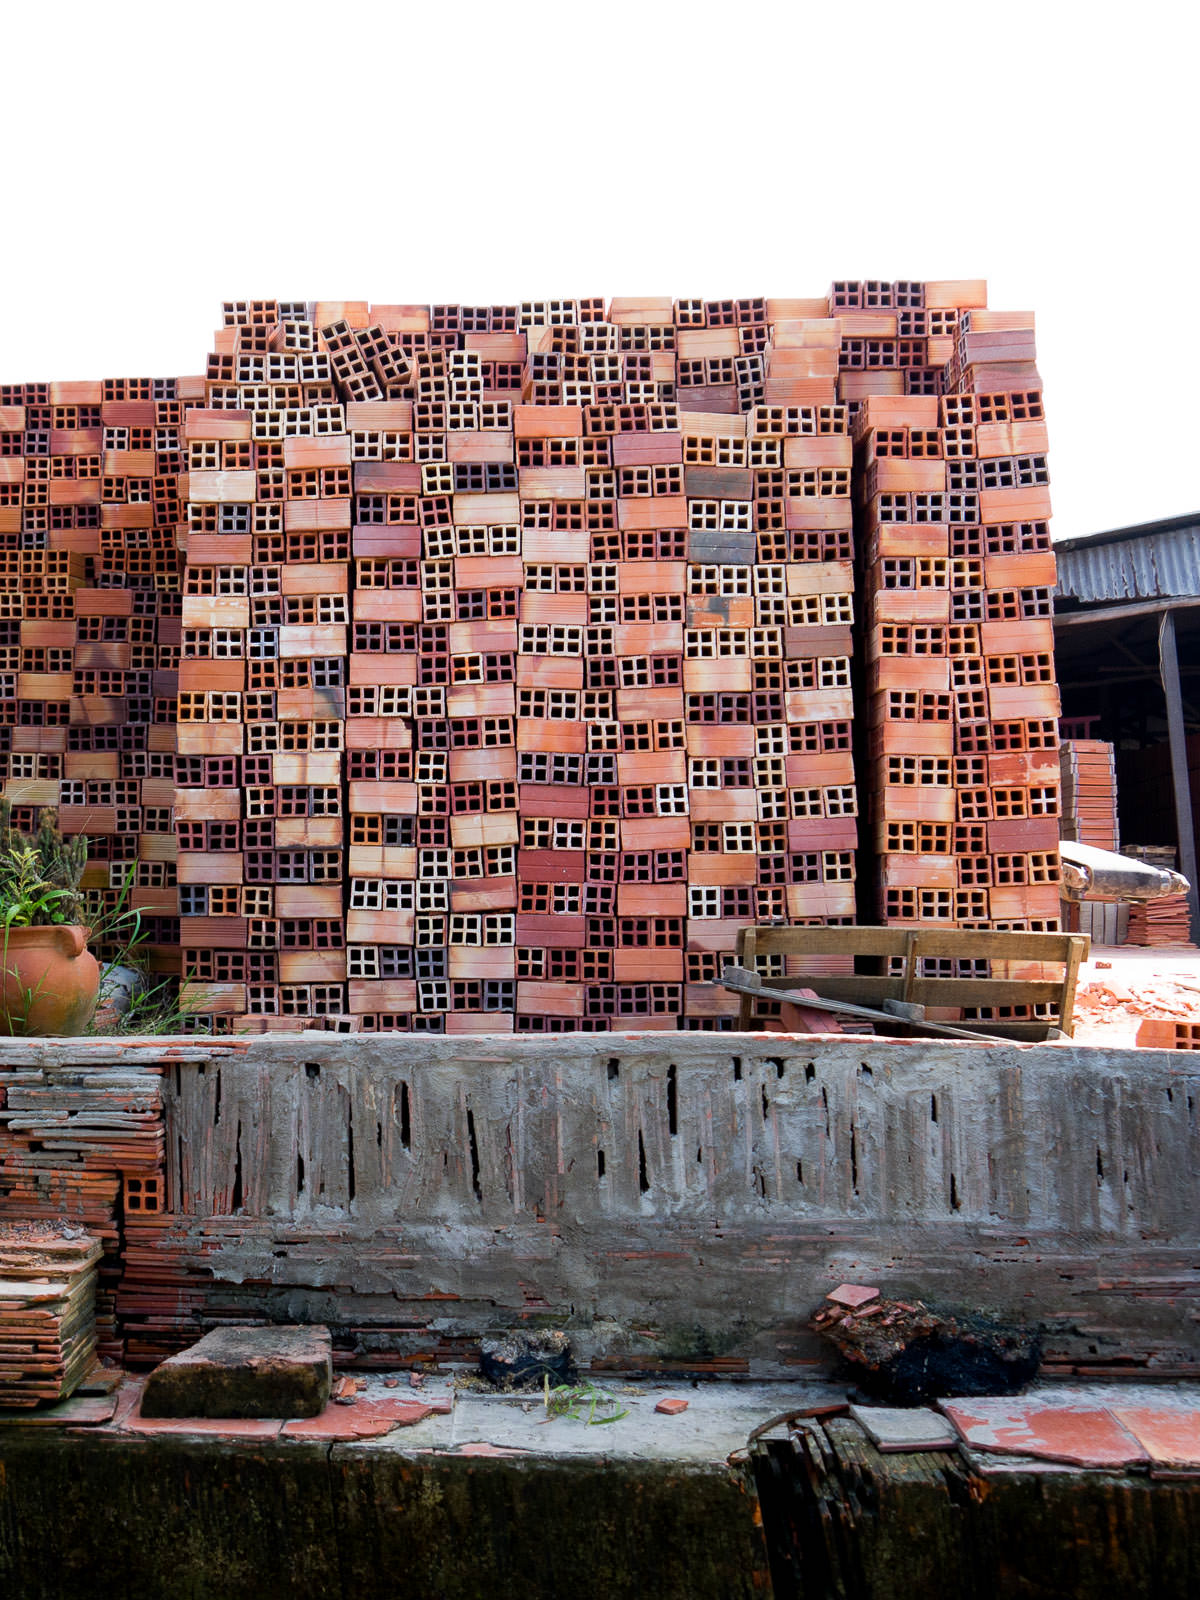 Piles of bricks at the brick factory in Sa Dec.